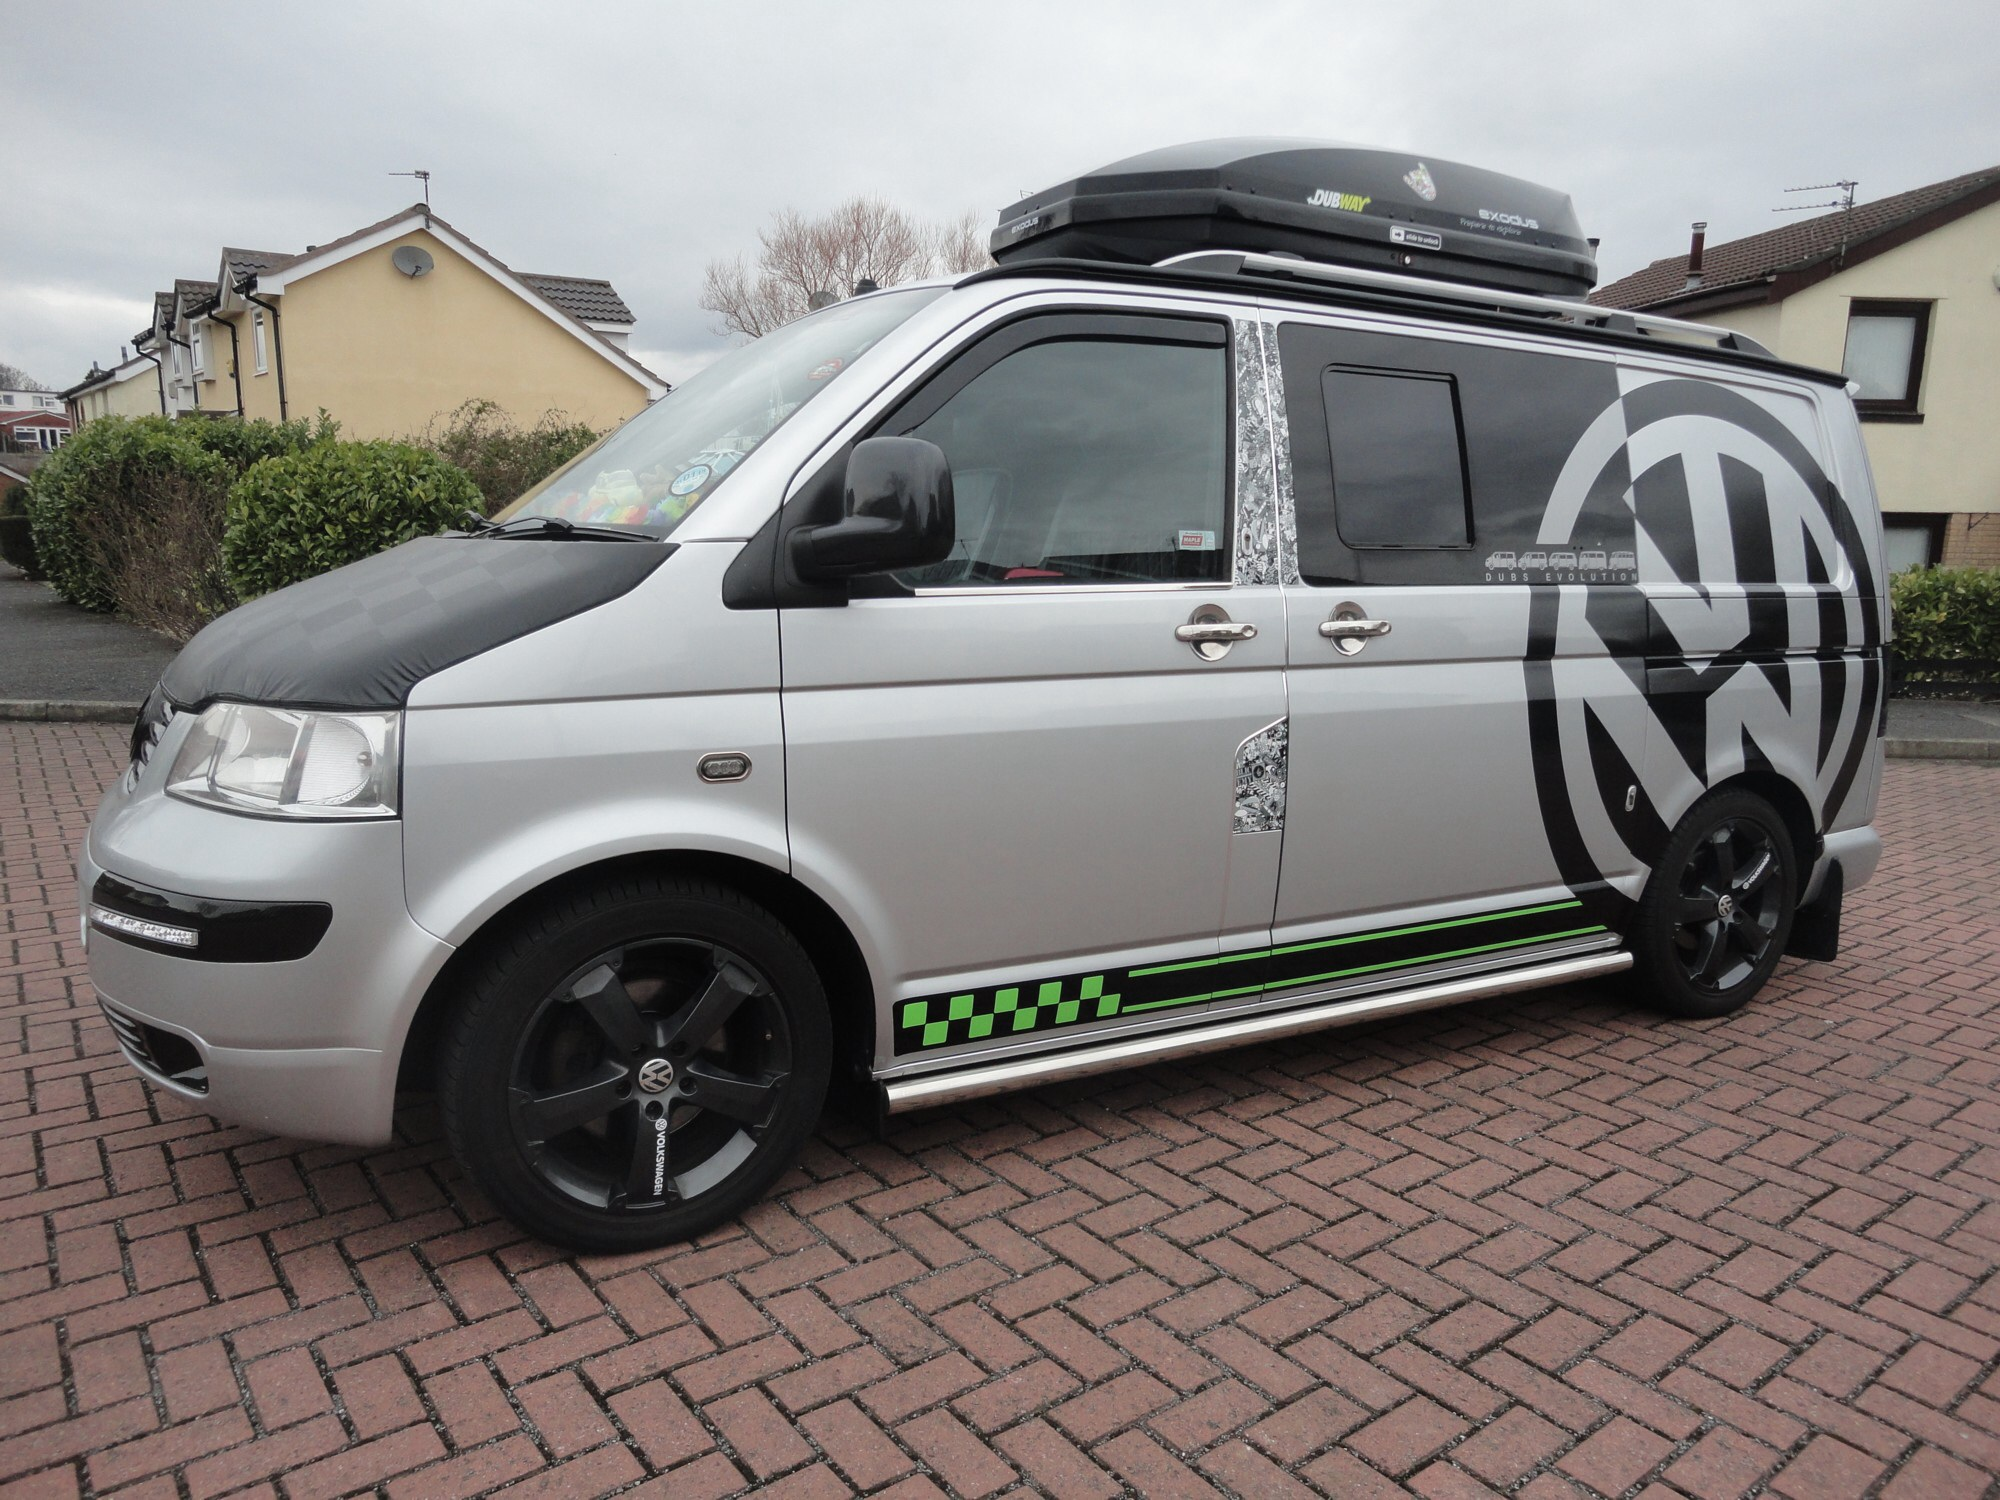 Roof Bars And Top Box For Sale Vw T4 Forum Vw T5 Forum